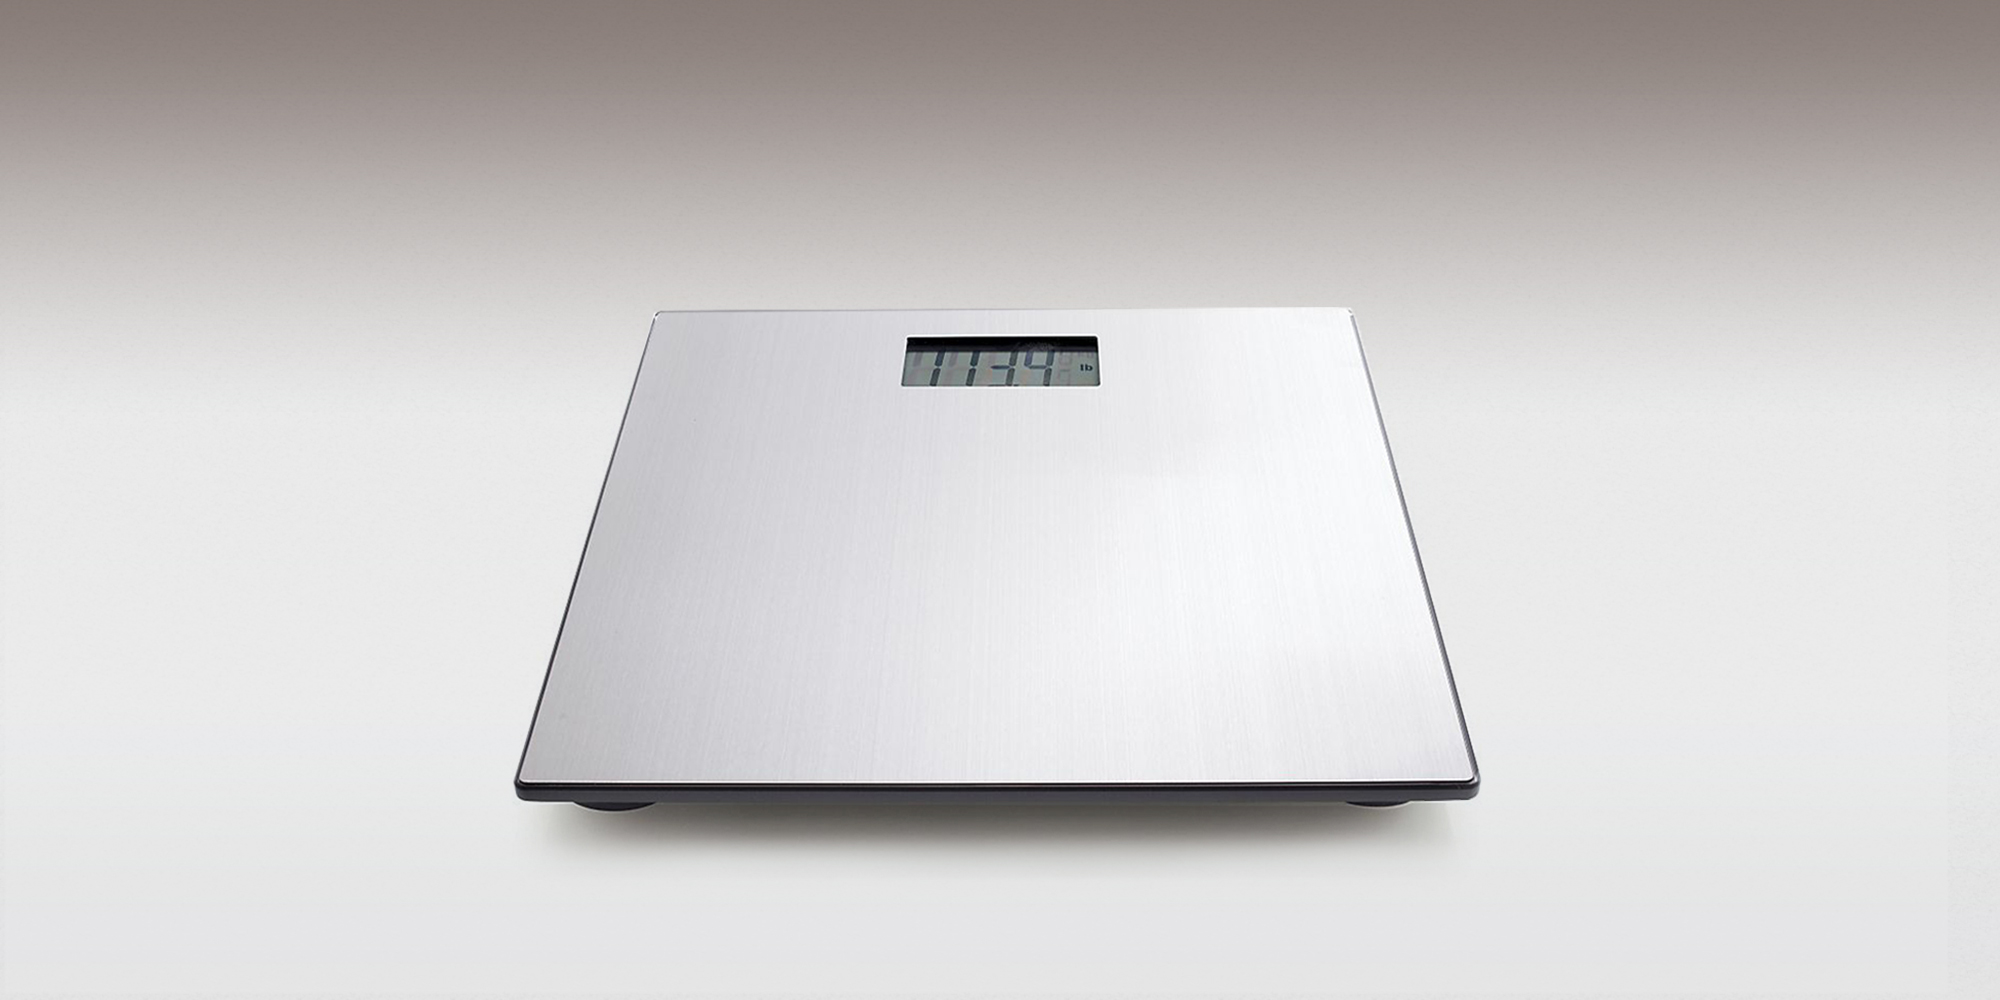 Bathroom scales at